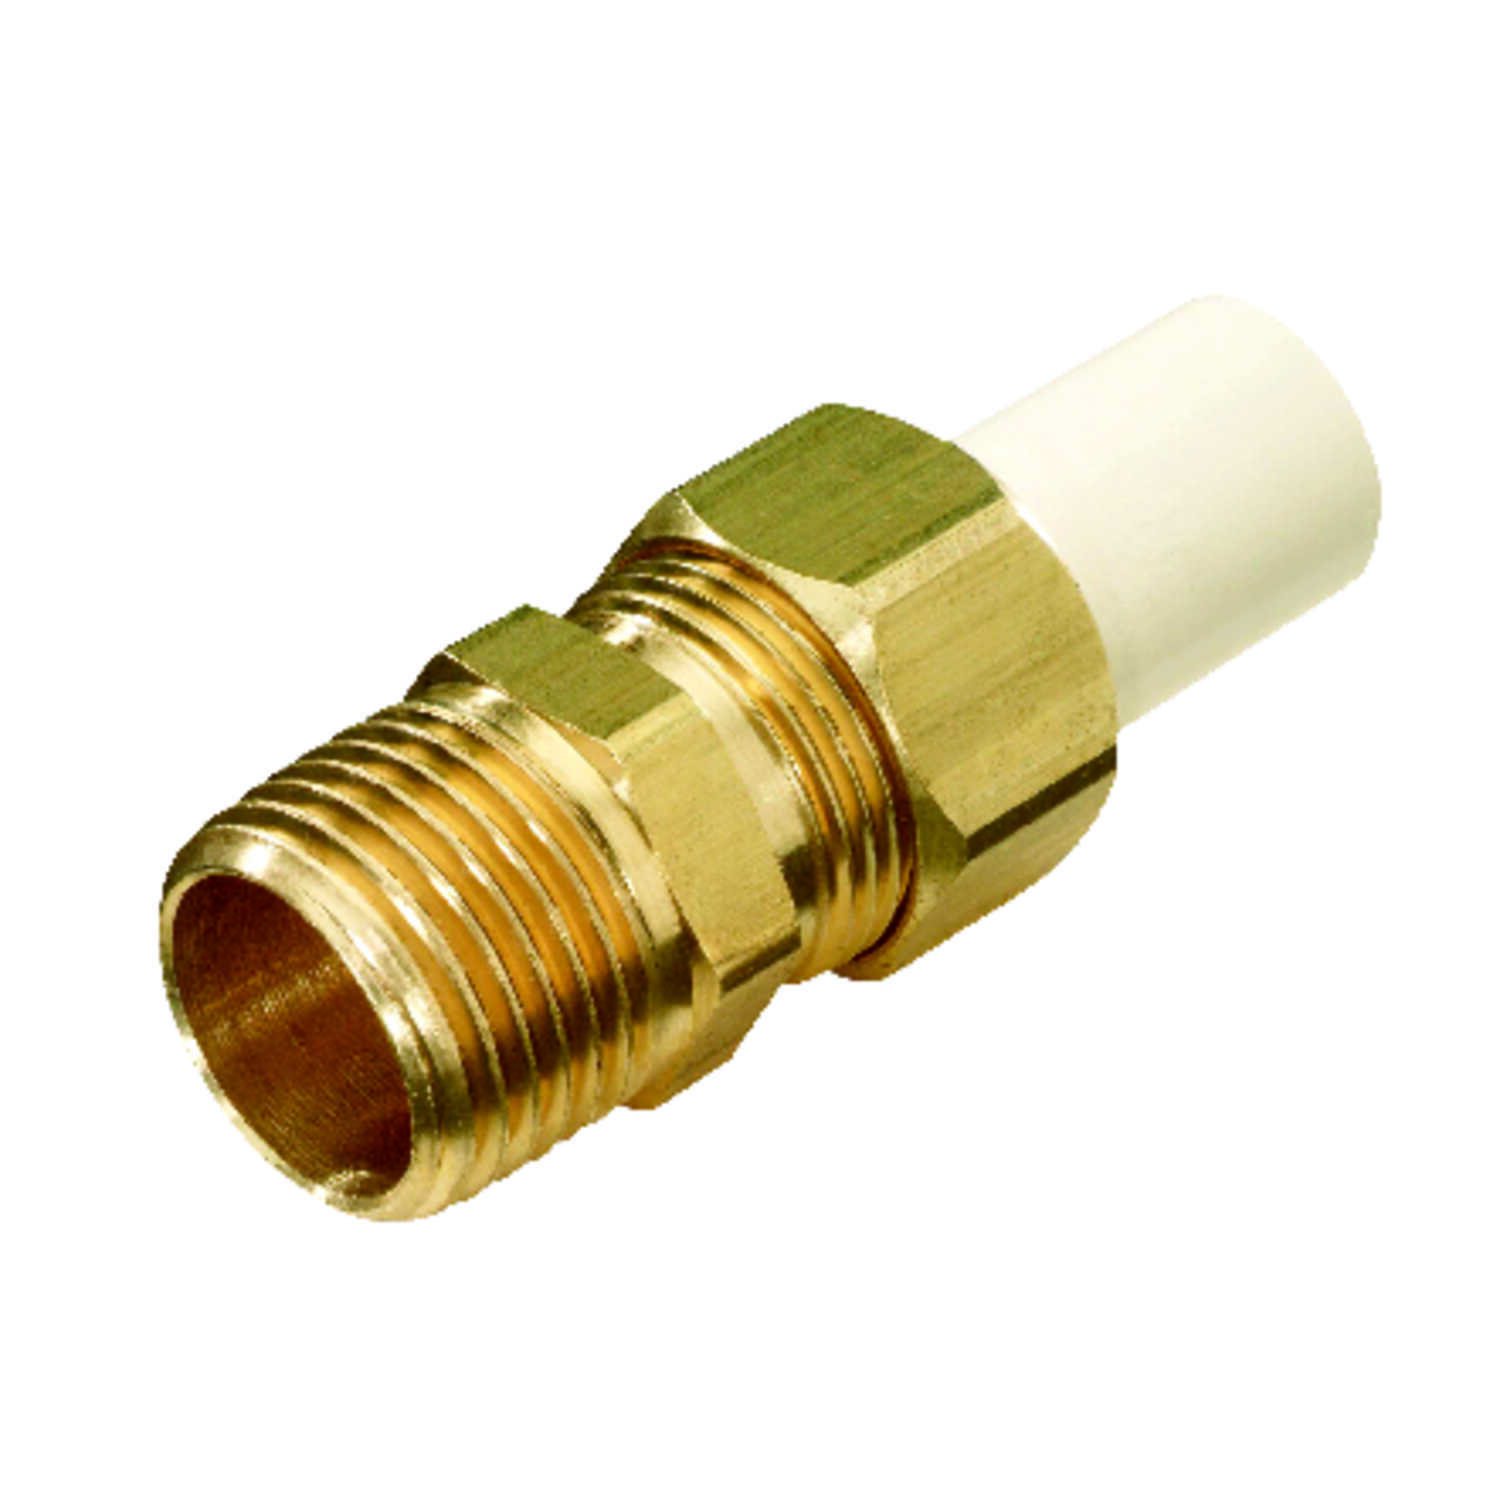 KBI  Schedule 40  1/2 in. MPT   x 1/2 in. Dia. Spigot  CPVC  Transition Adapter